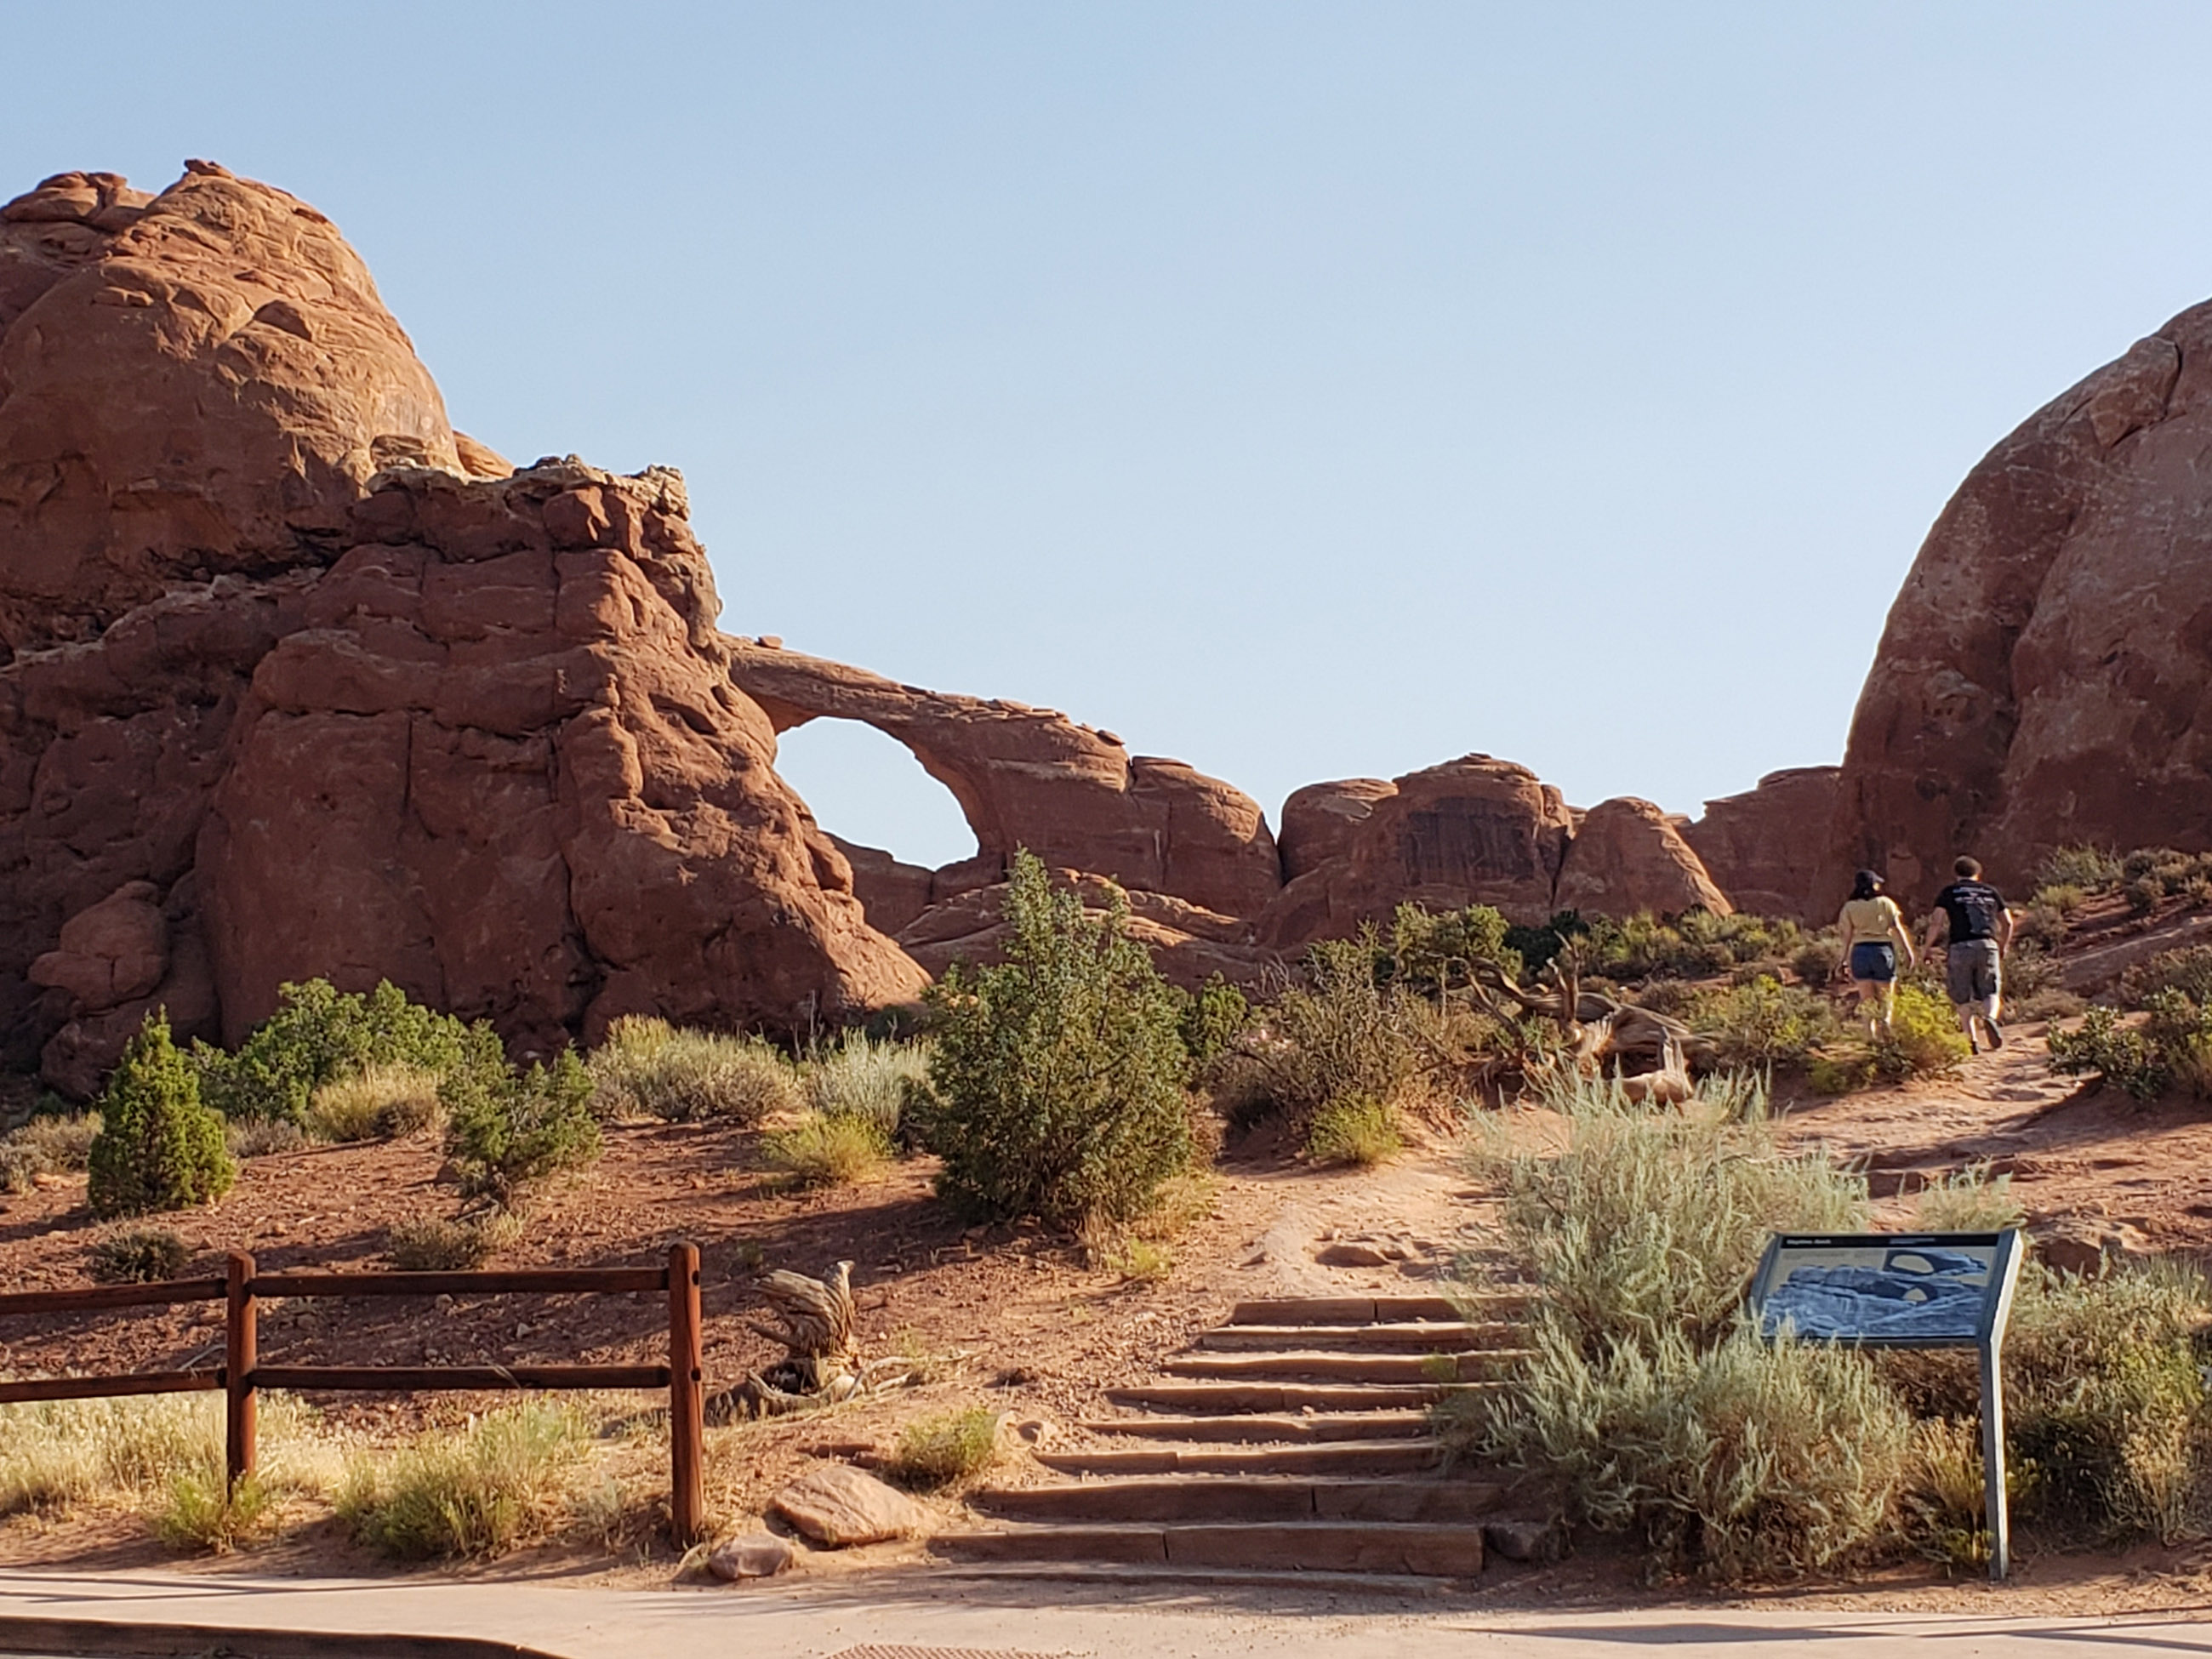 Sky Arch as seen from parking area at Arches National Park